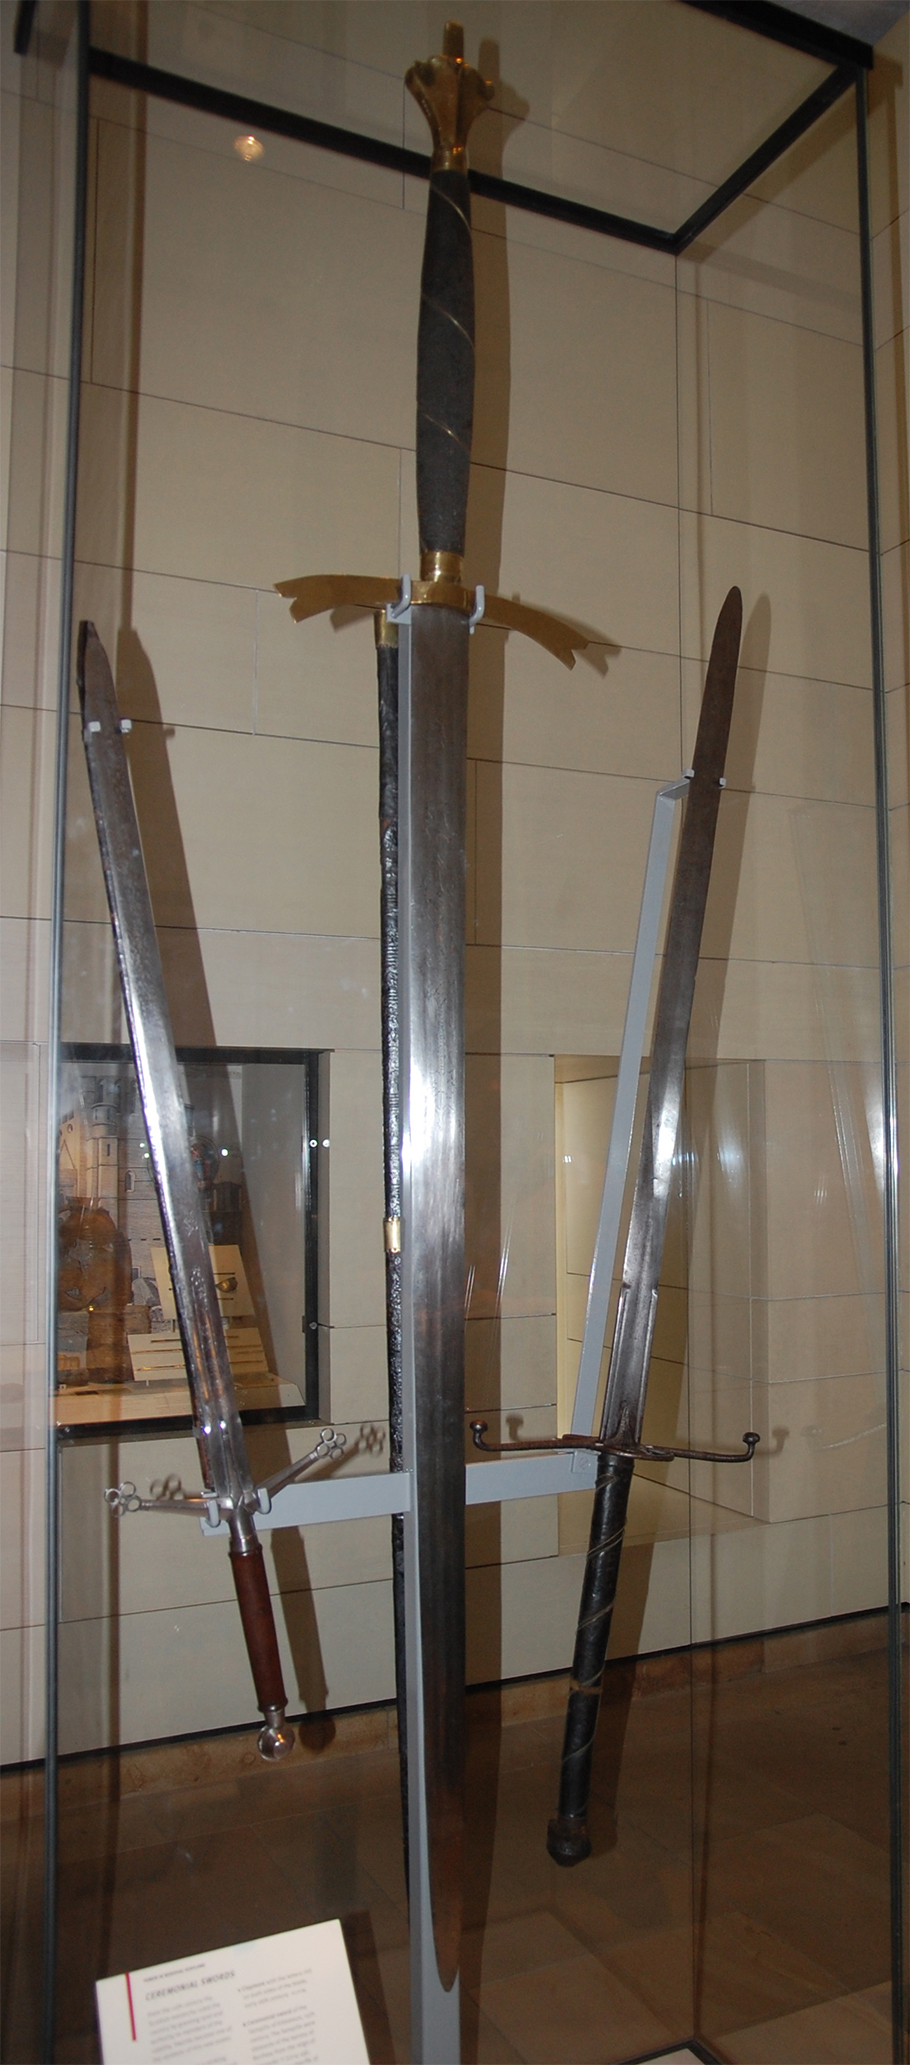 claymore sempill sword and lowland sword. national museum of scotland